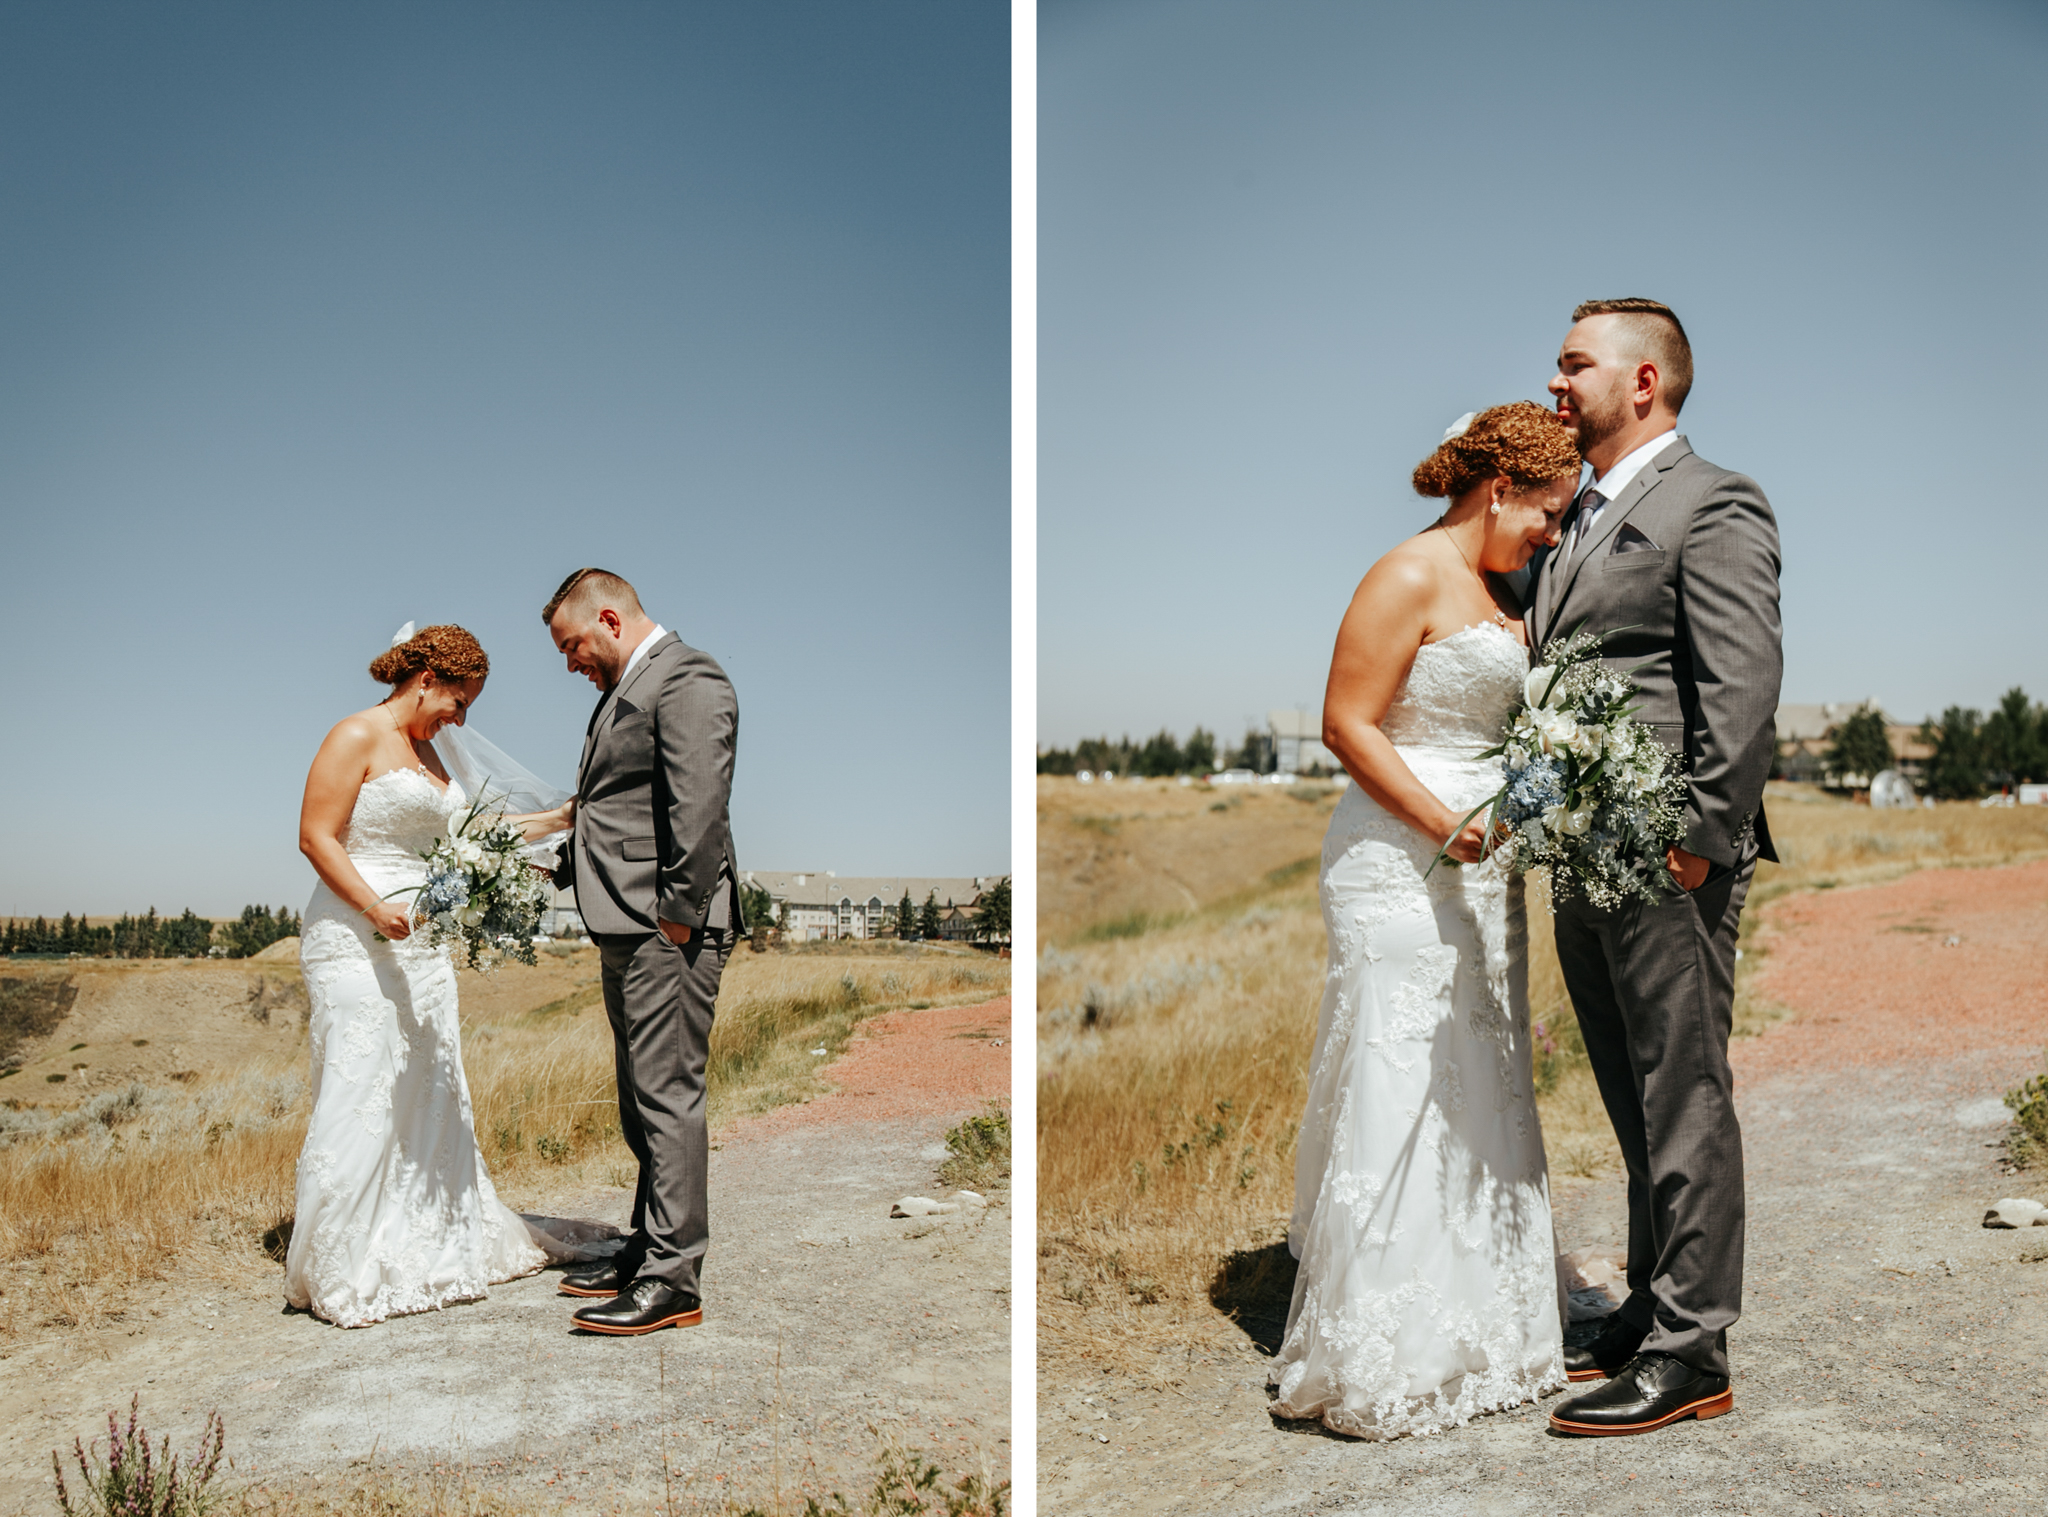 lethbridge-wedding-photographer-love-and-be-loved-photography-trent-danielle-galt-reception-picture-image-photo-80.jpg